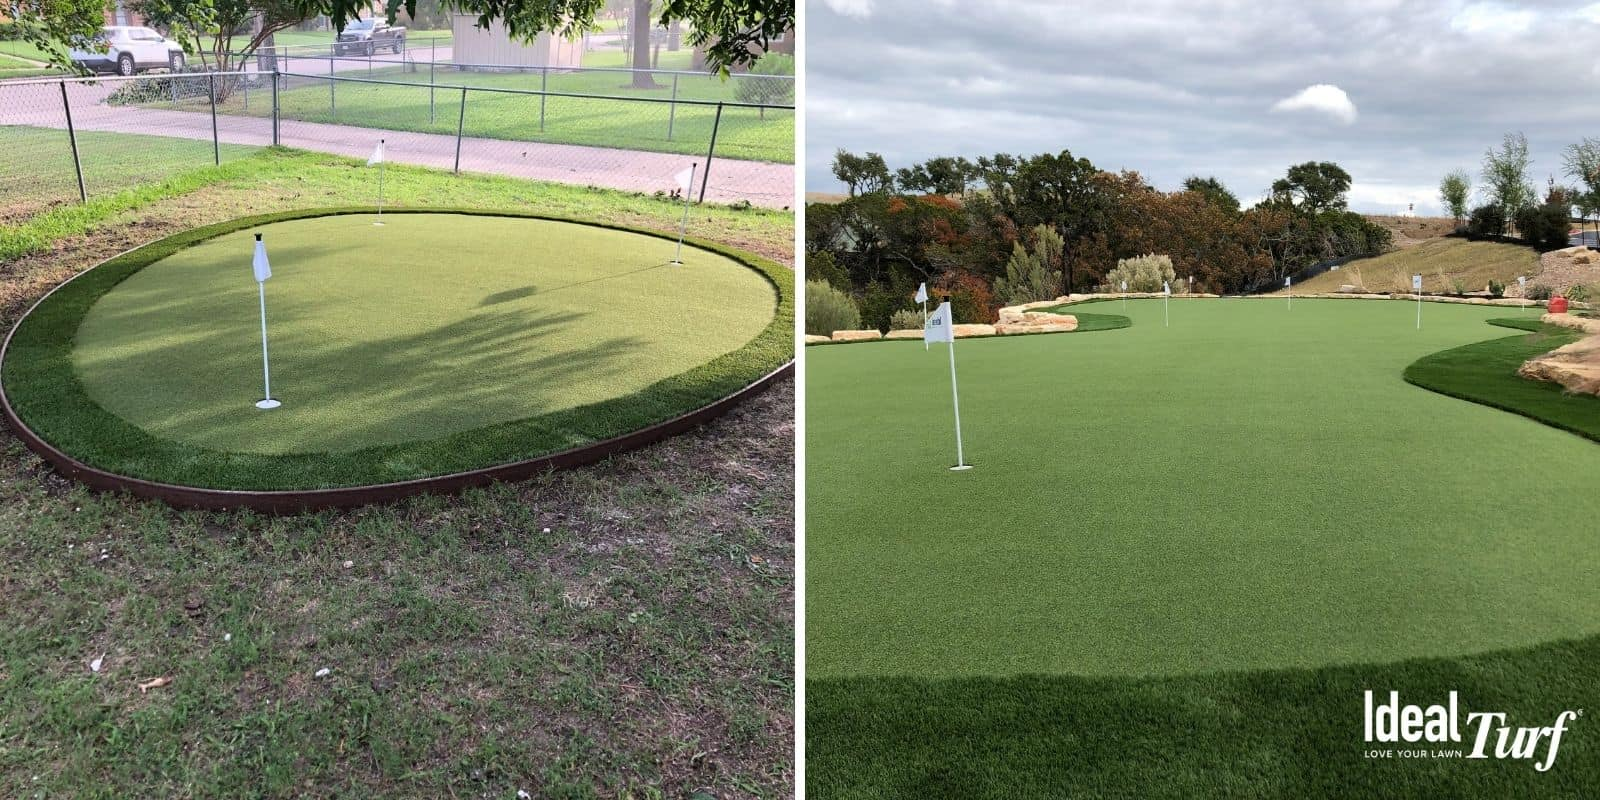 Large & Small Putting Greens Side-By-Side